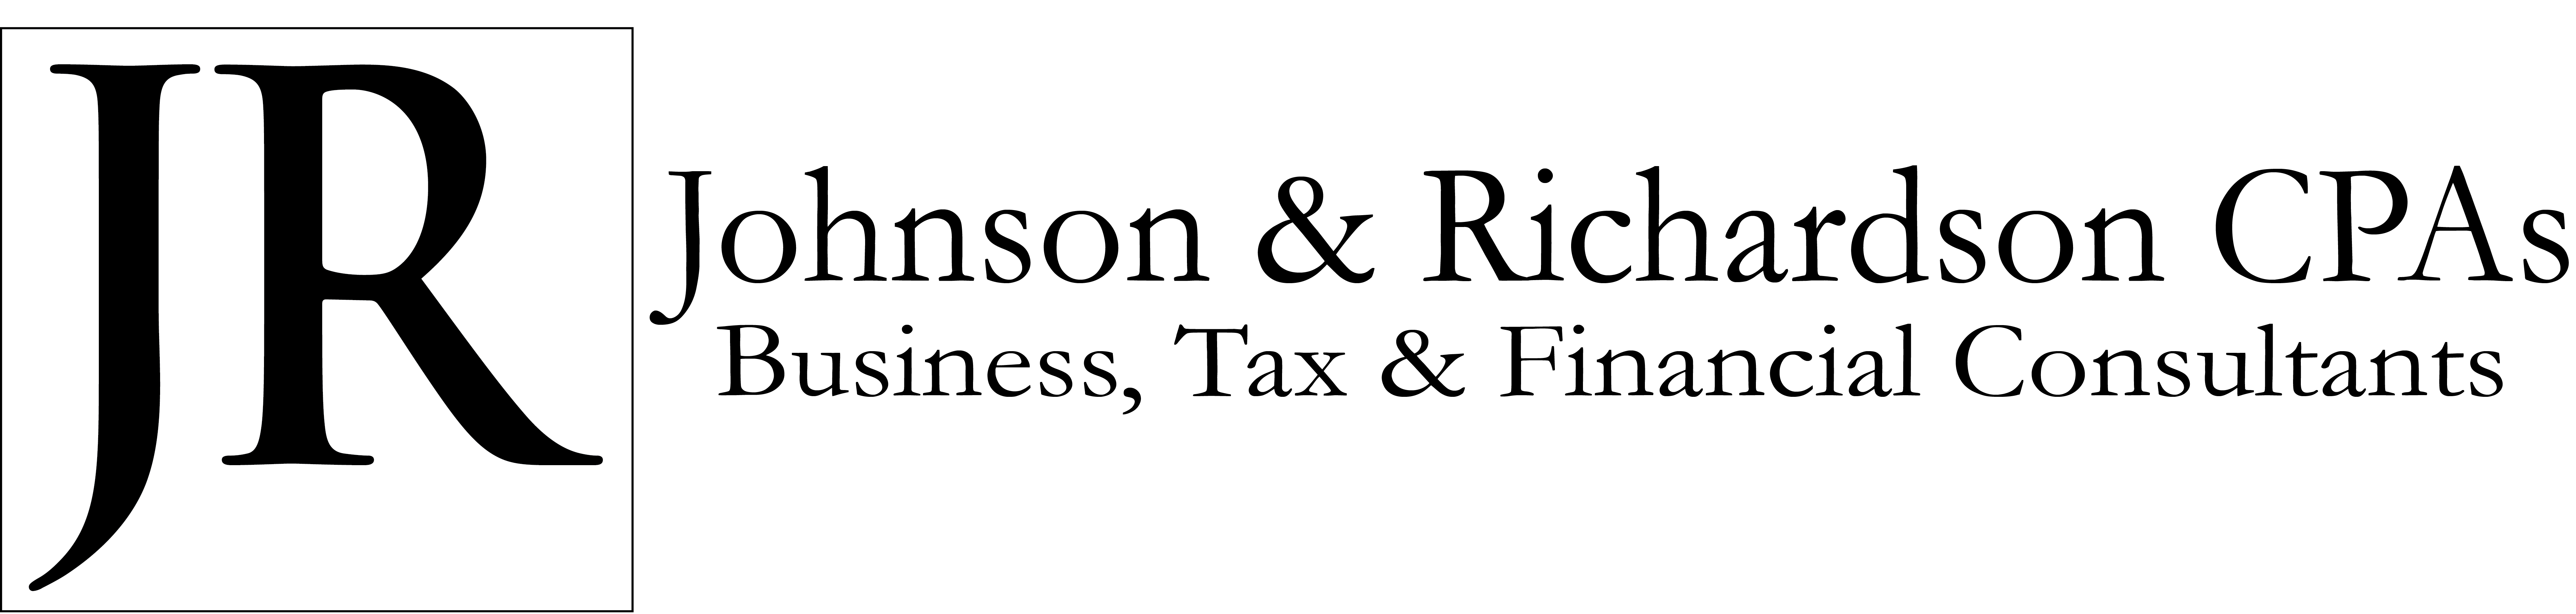 Johnson & Richards CPAs